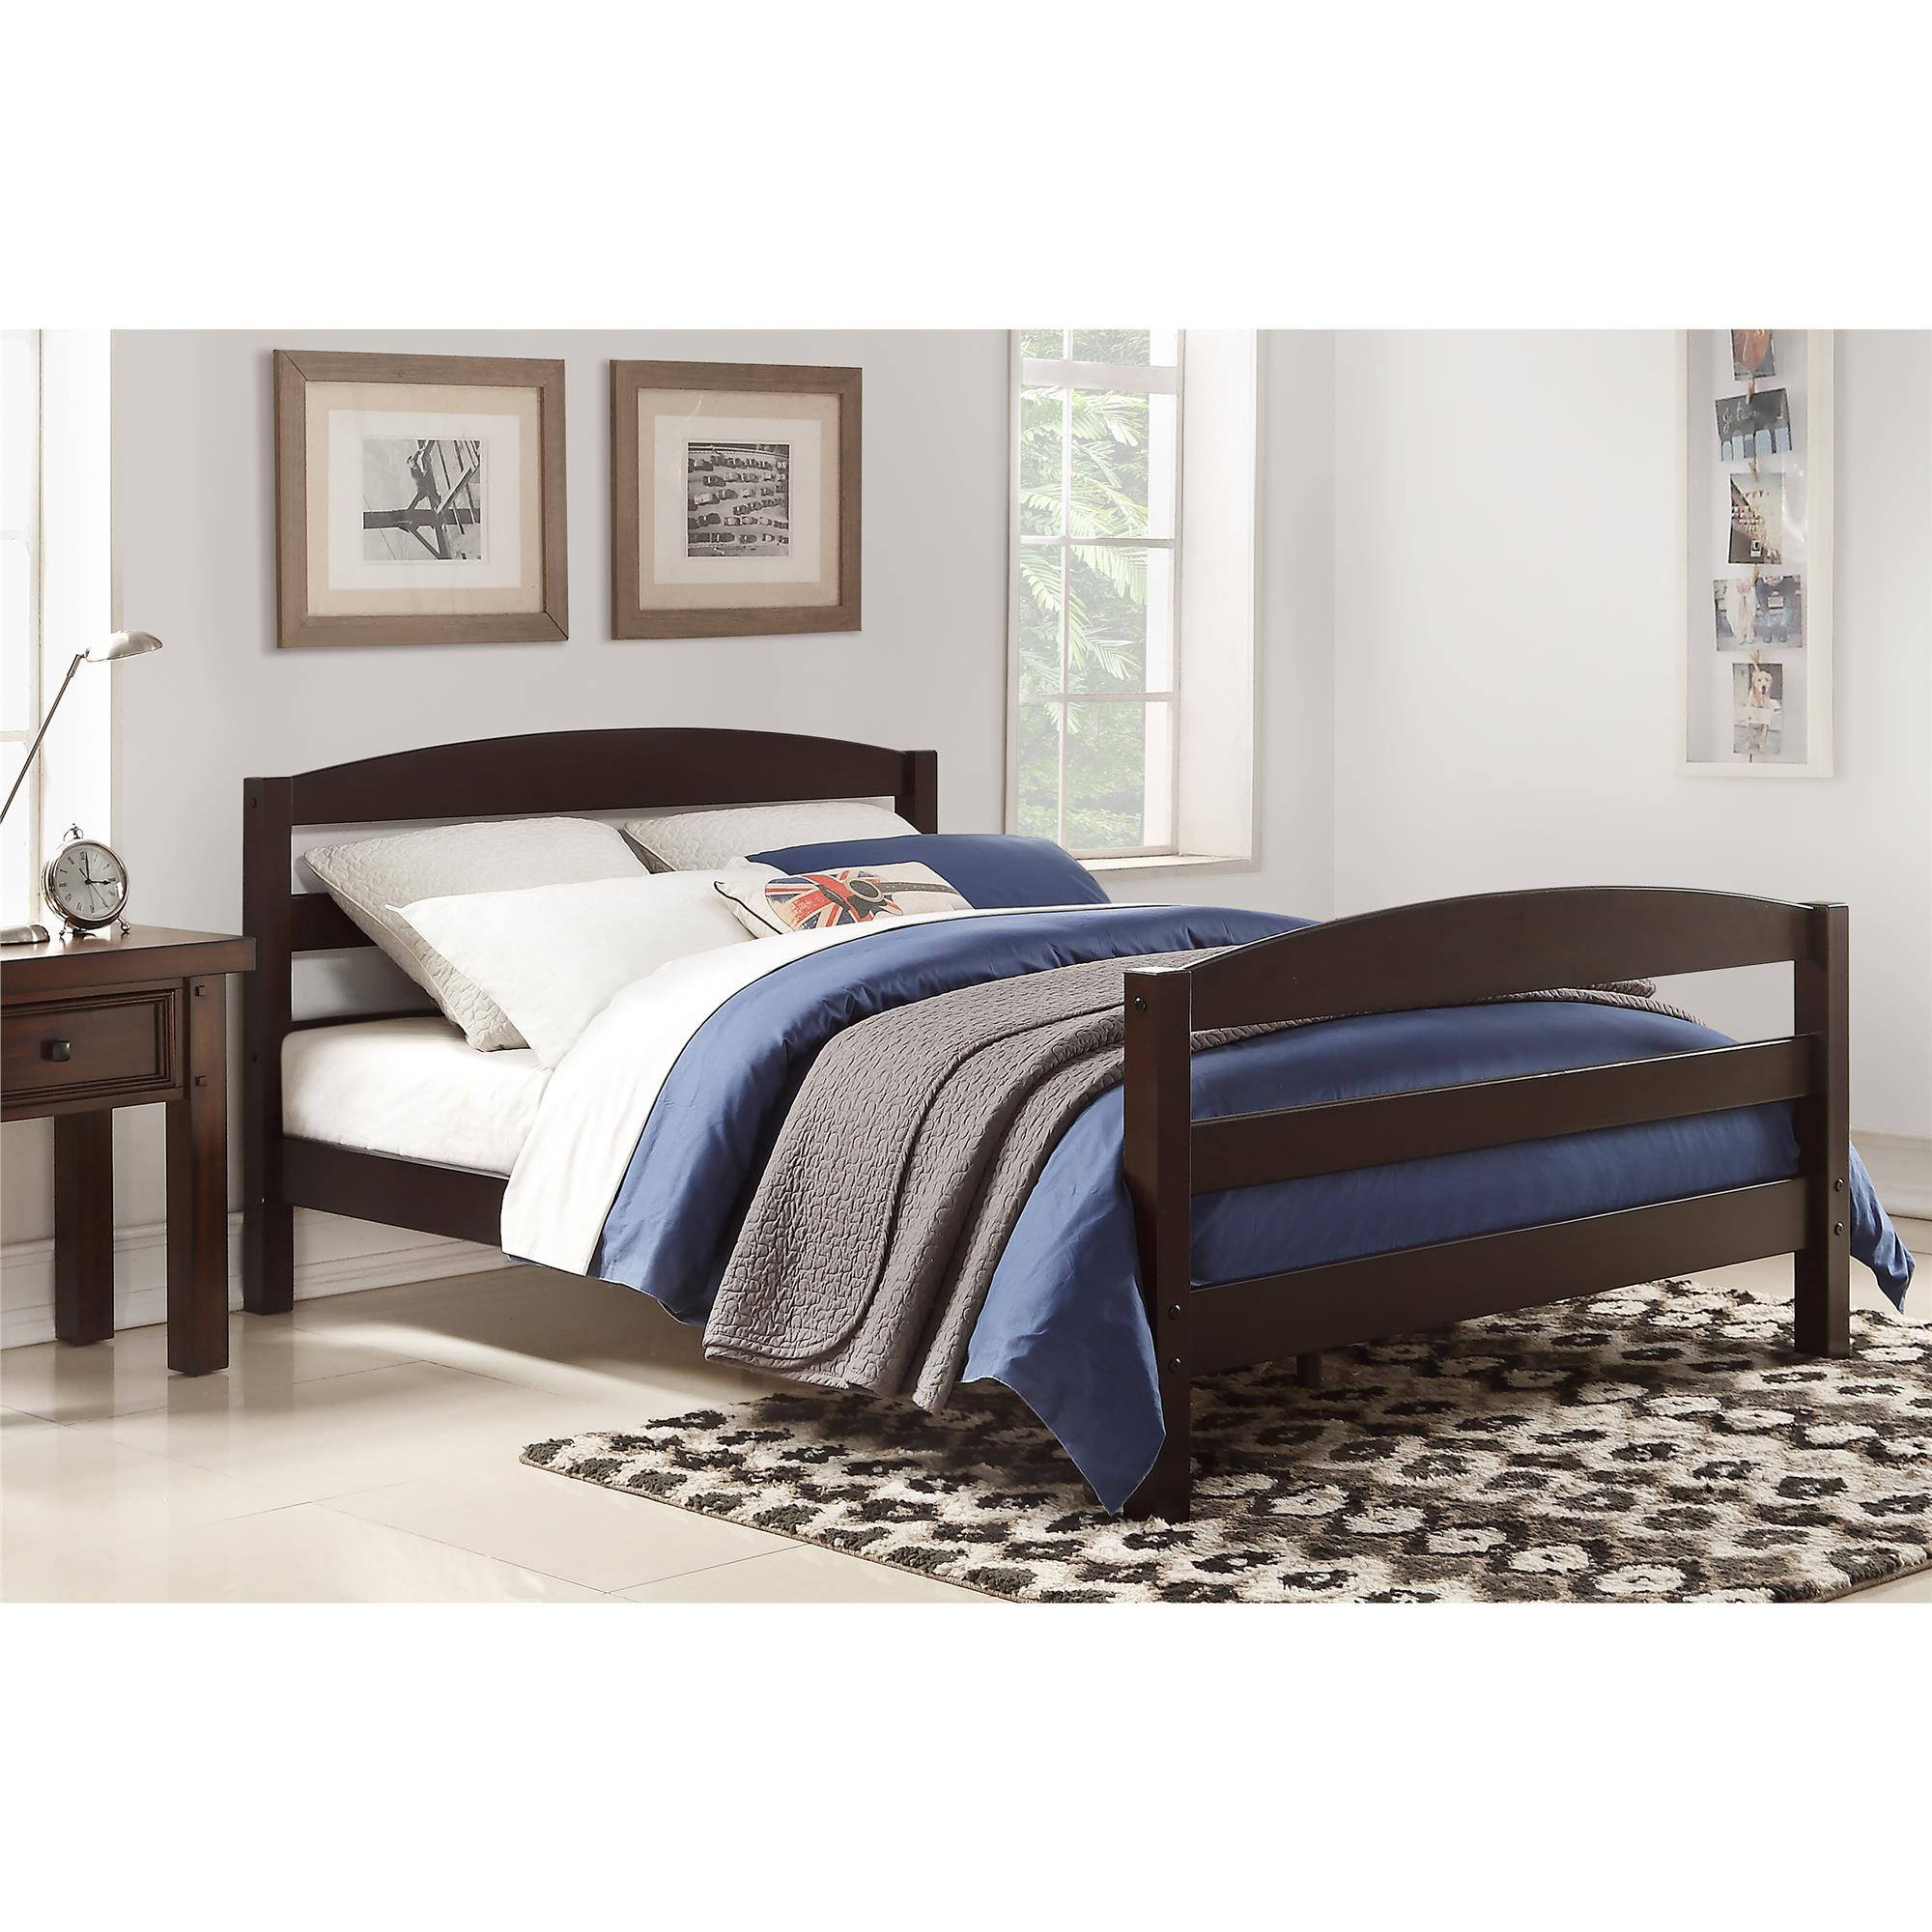 Better Homes and Gardens Leighton Full Bed, Multiple Colors